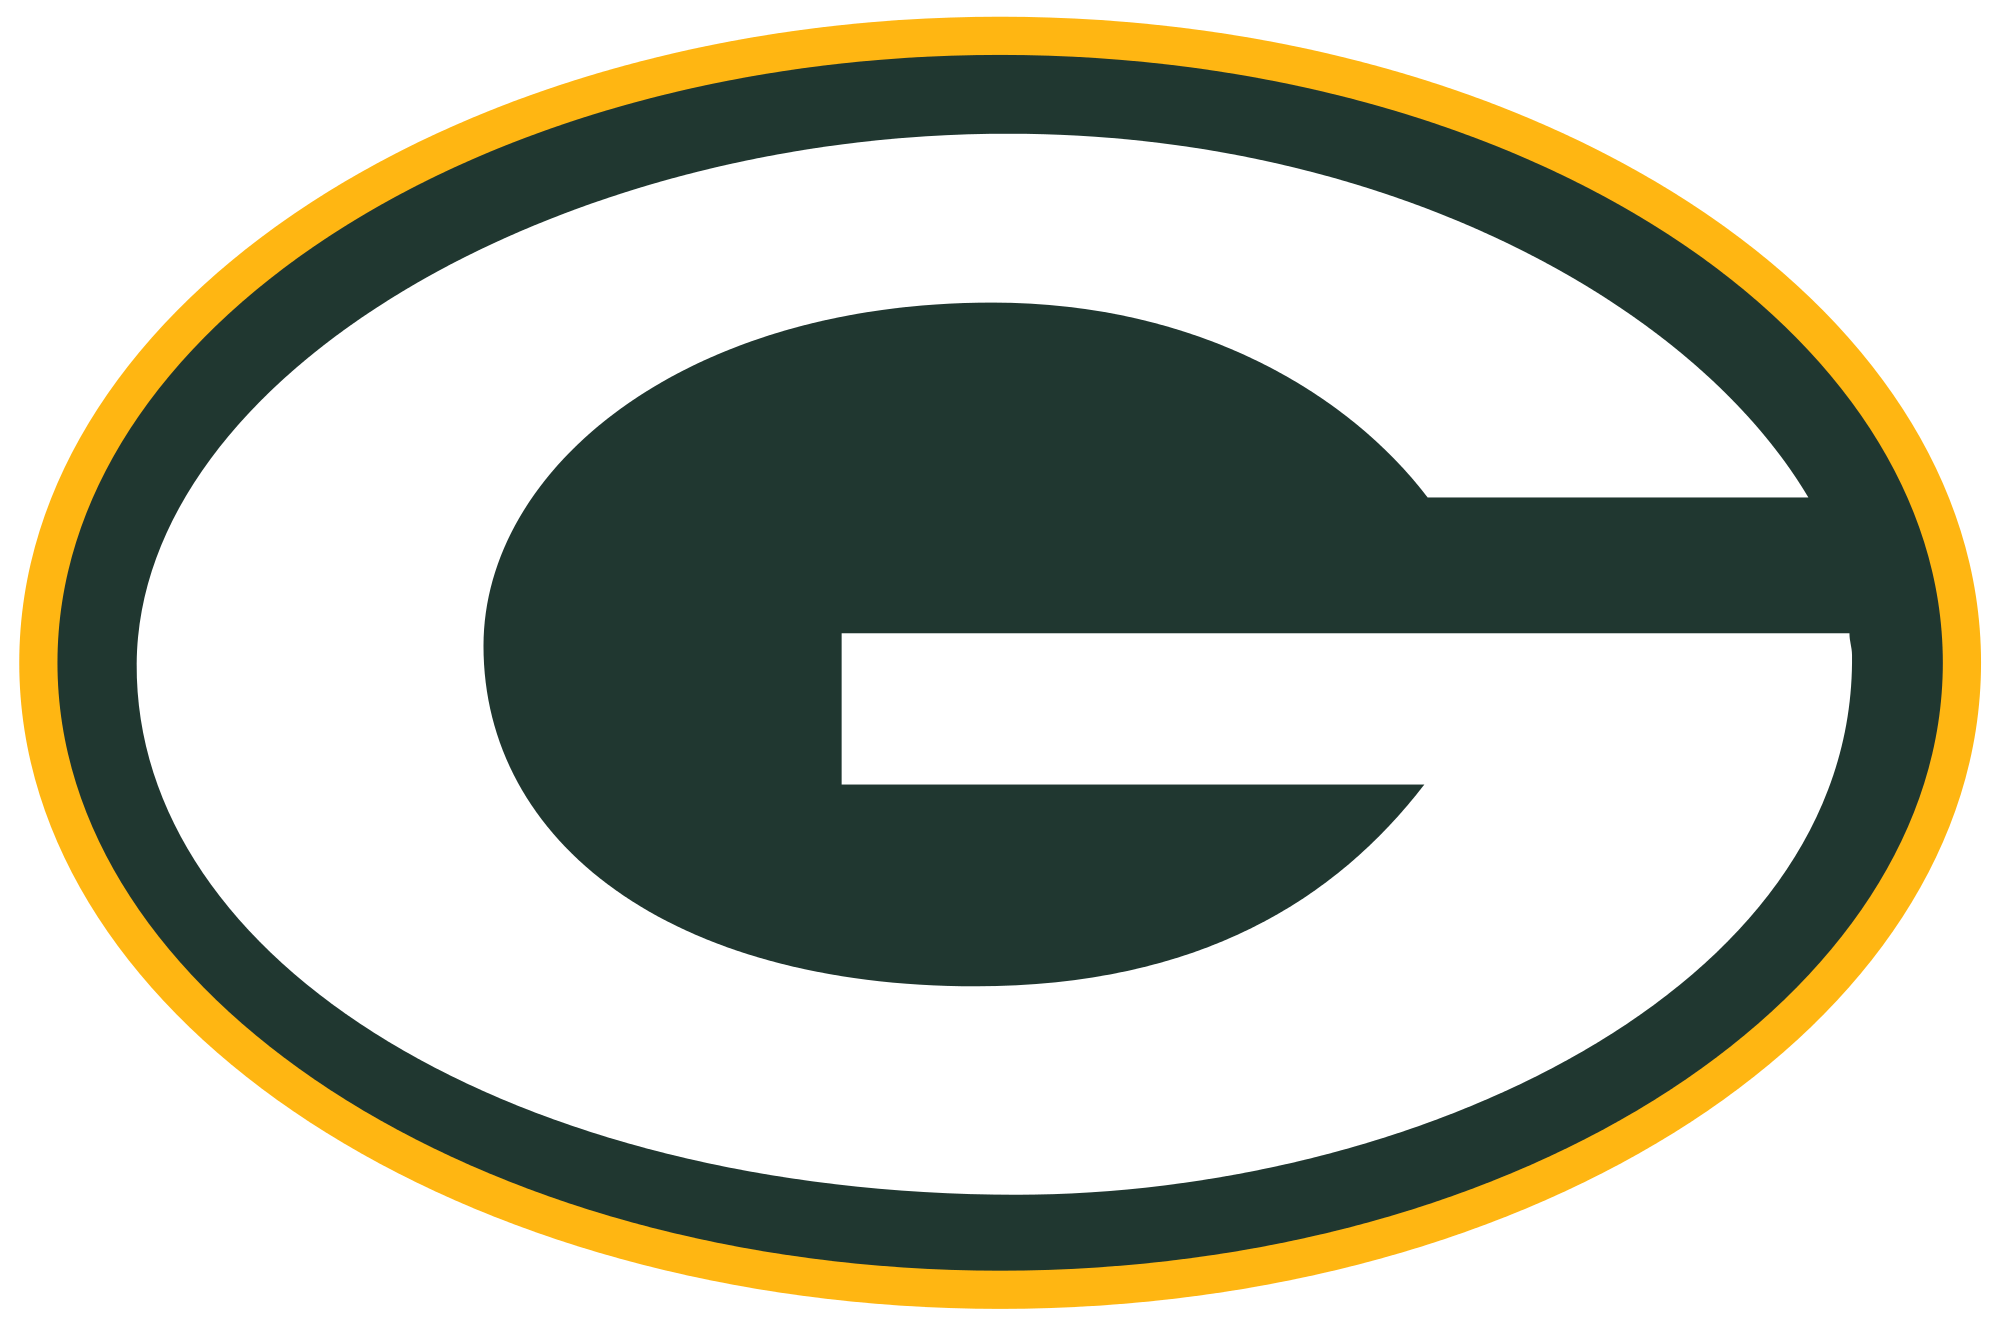 Green Bay Packers Logo Transparent Png Stickpng